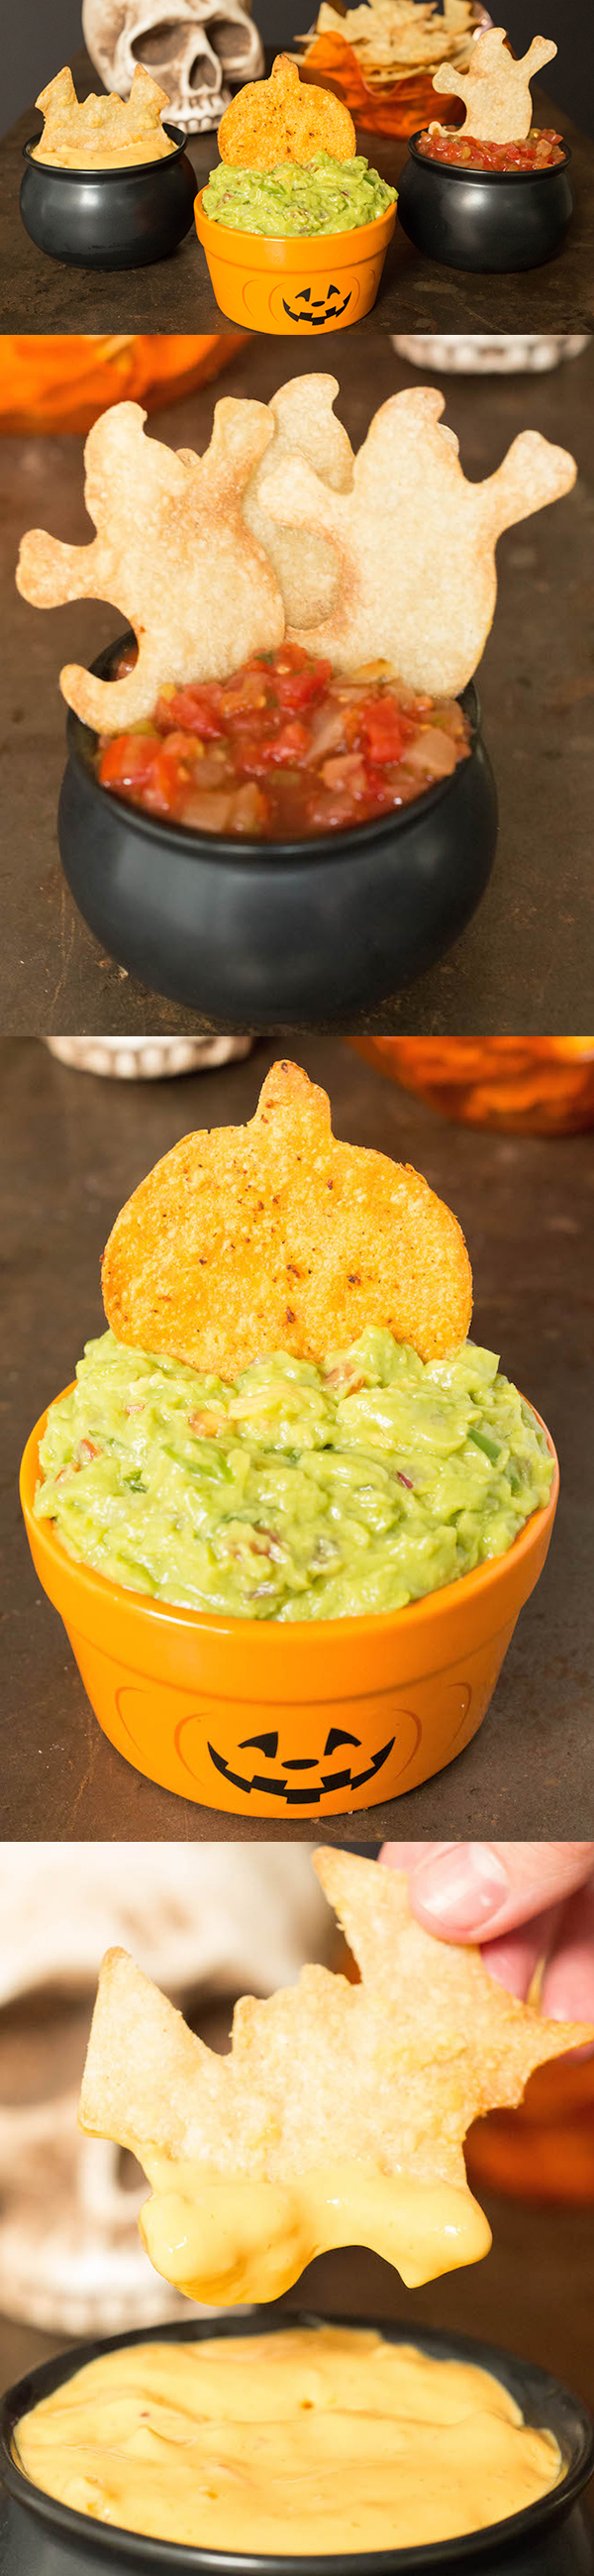 Easy Halloween Recipe: Halloween Tortilla Chips made 3 ways